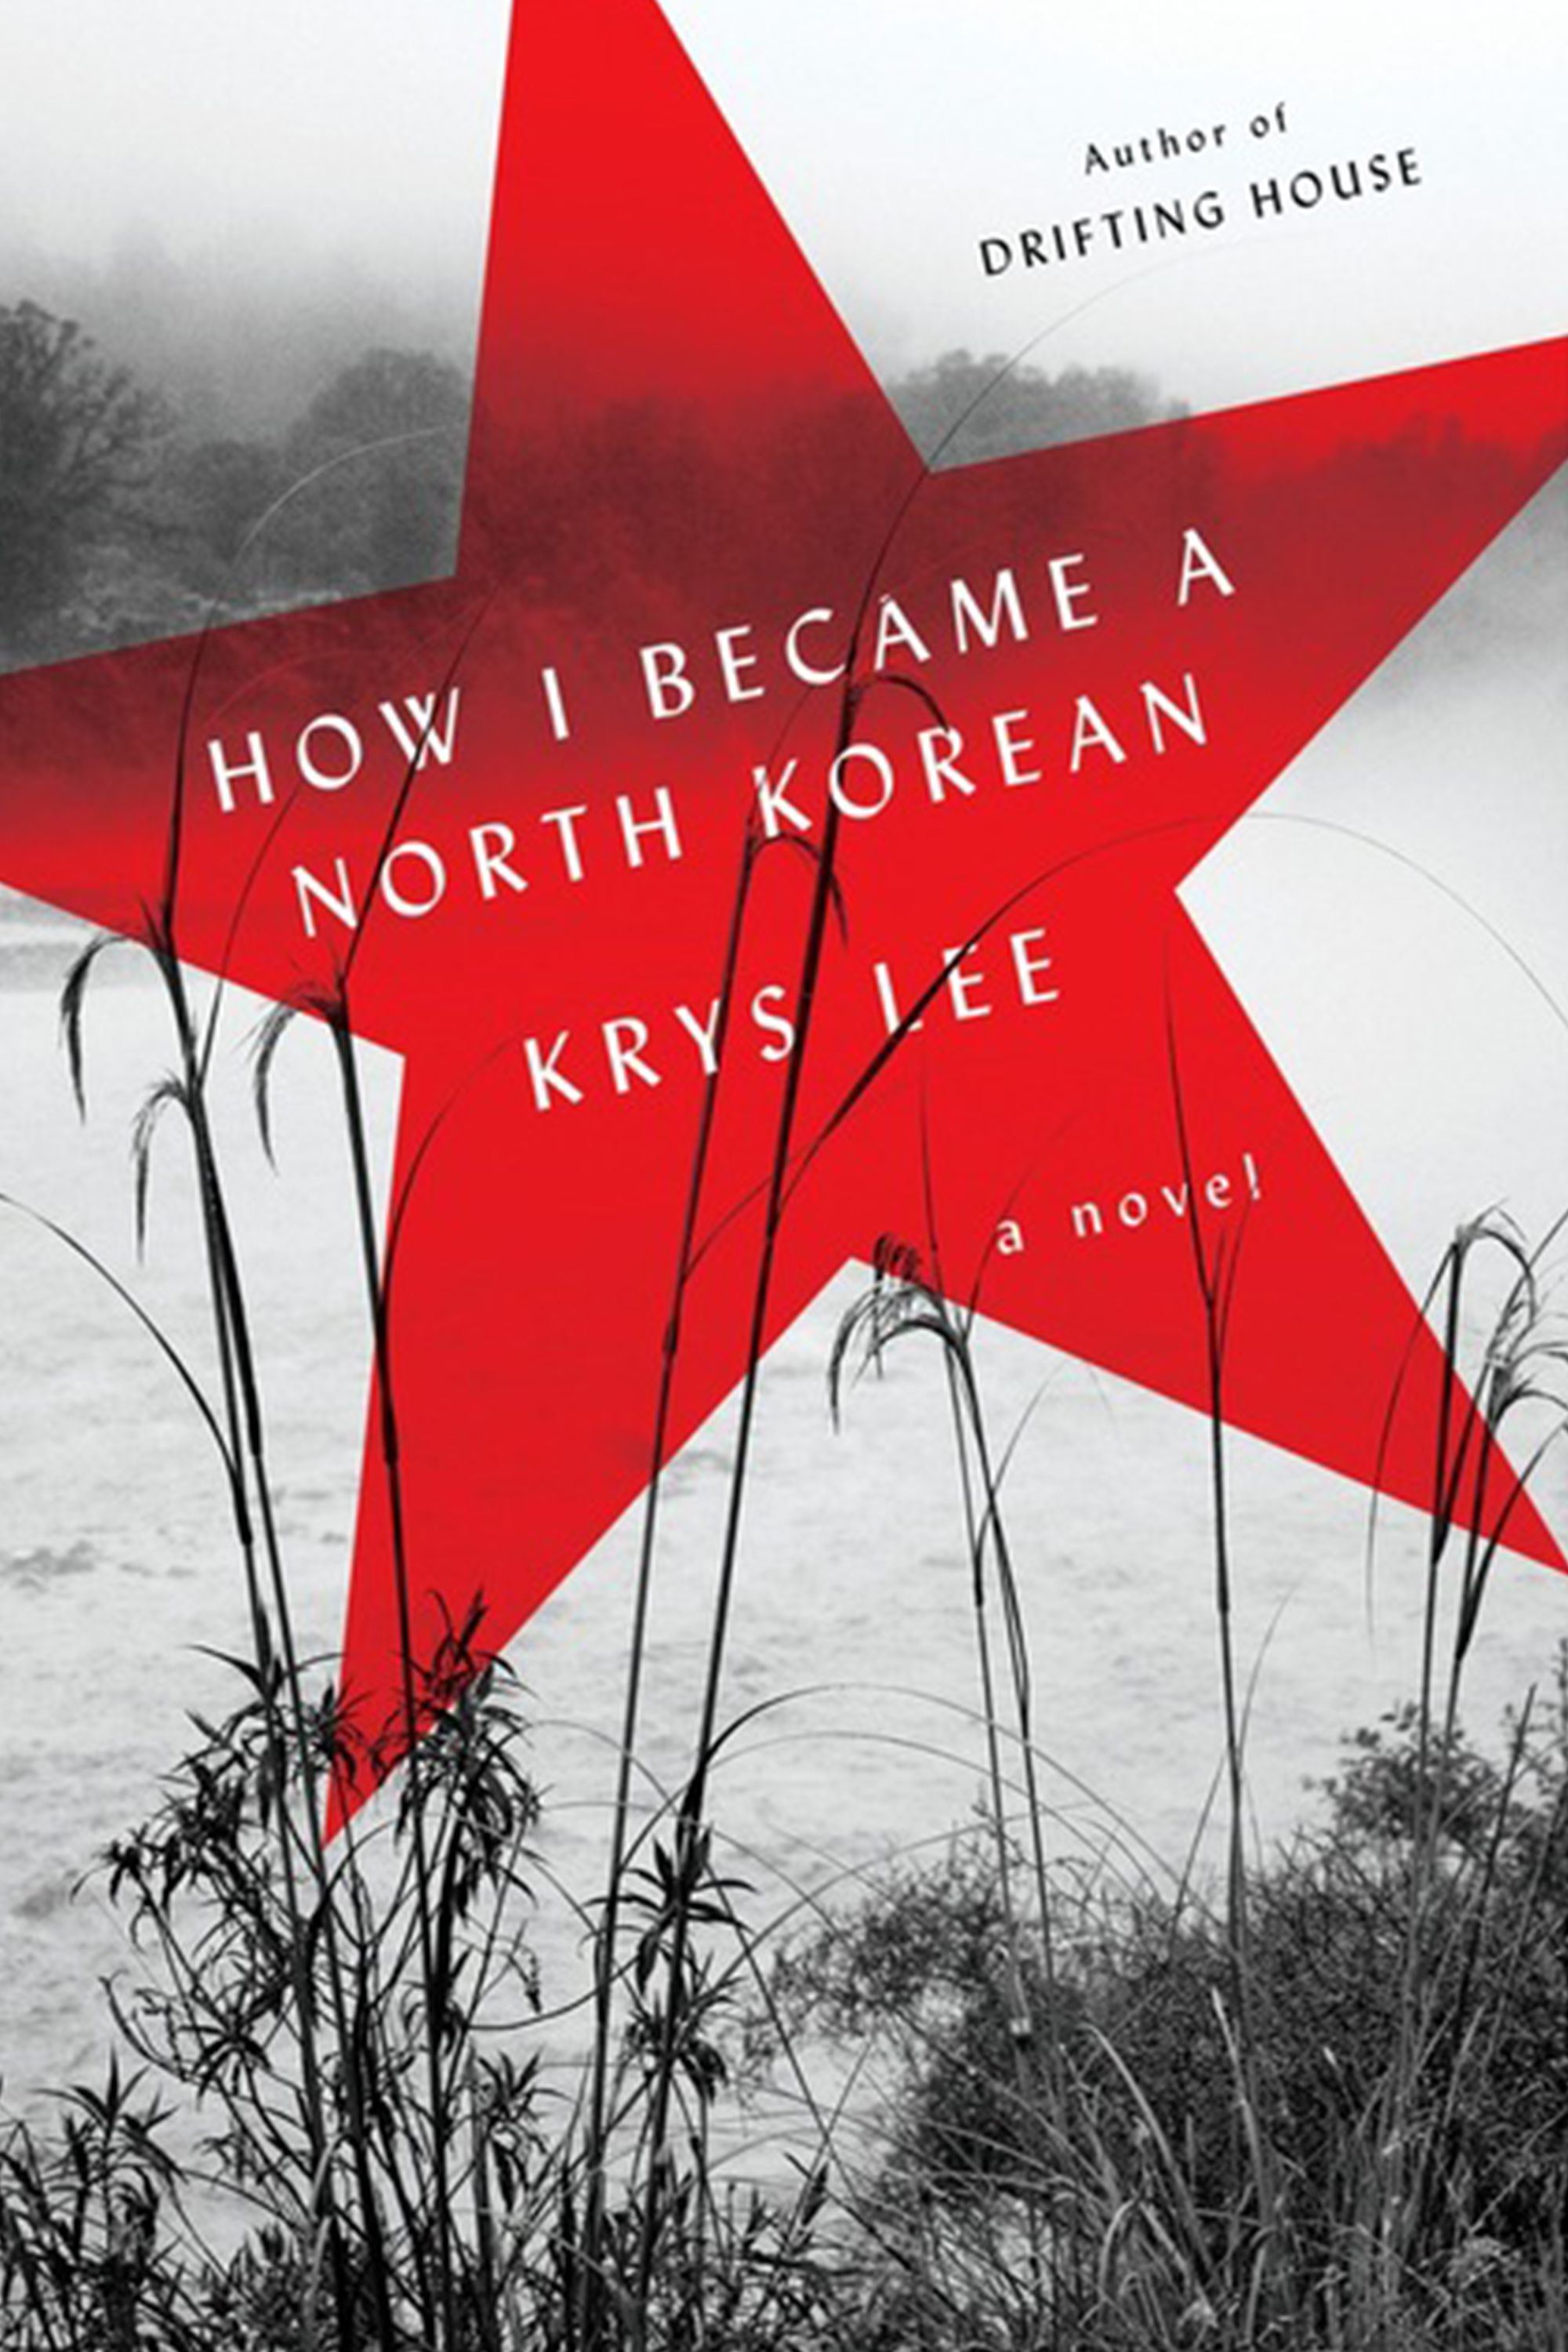 """<p>Krys Lee's debut novel draws on her work with North Korean refugees to tell the stories of Jangmi, a lifelong smuggler; Danny, a Chinese-American teenager; and Yongju, scion of an influential Pyongyang family. The three meet in the borderlands between China and North Korea, and struggle against hunger, slavery, and hopelessness. Lee's story throws light on a place we know little about, in heart-wrenching, lyrical detail. (<a href=""""https://www.amazon.com/How-Became-North-Korean-Novel/dp/0670025682"""">Viking</a>, August 2)</p>"""